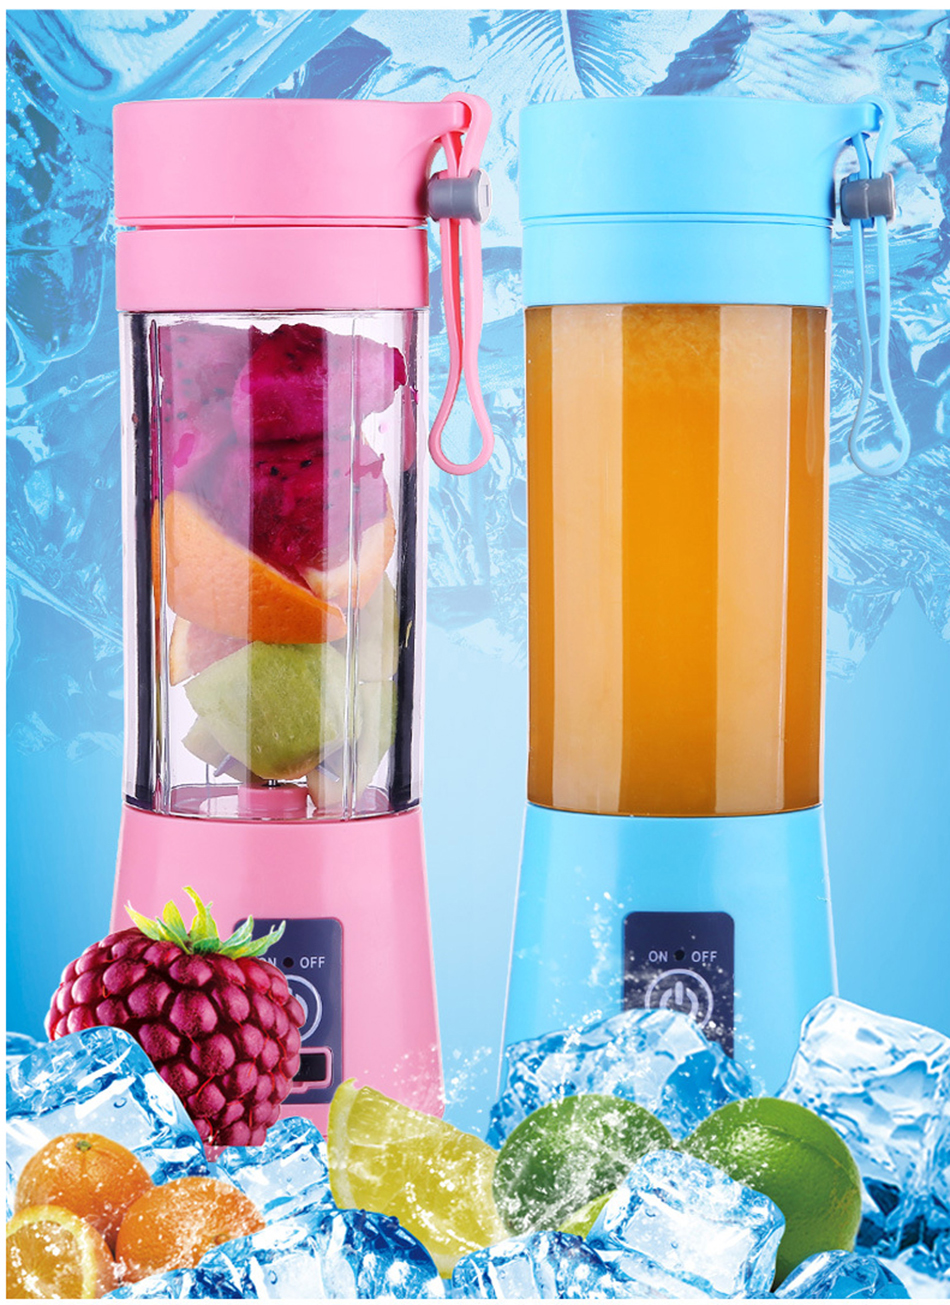 HTB1gyhEWgHqK1RjSZJnq6zNLpXau 380ml Portable Juice Blender USB Juicer Cup Multi-function Fruit Mixer Six Blade Mixing Machine Smoothies Baby Food dropshipping